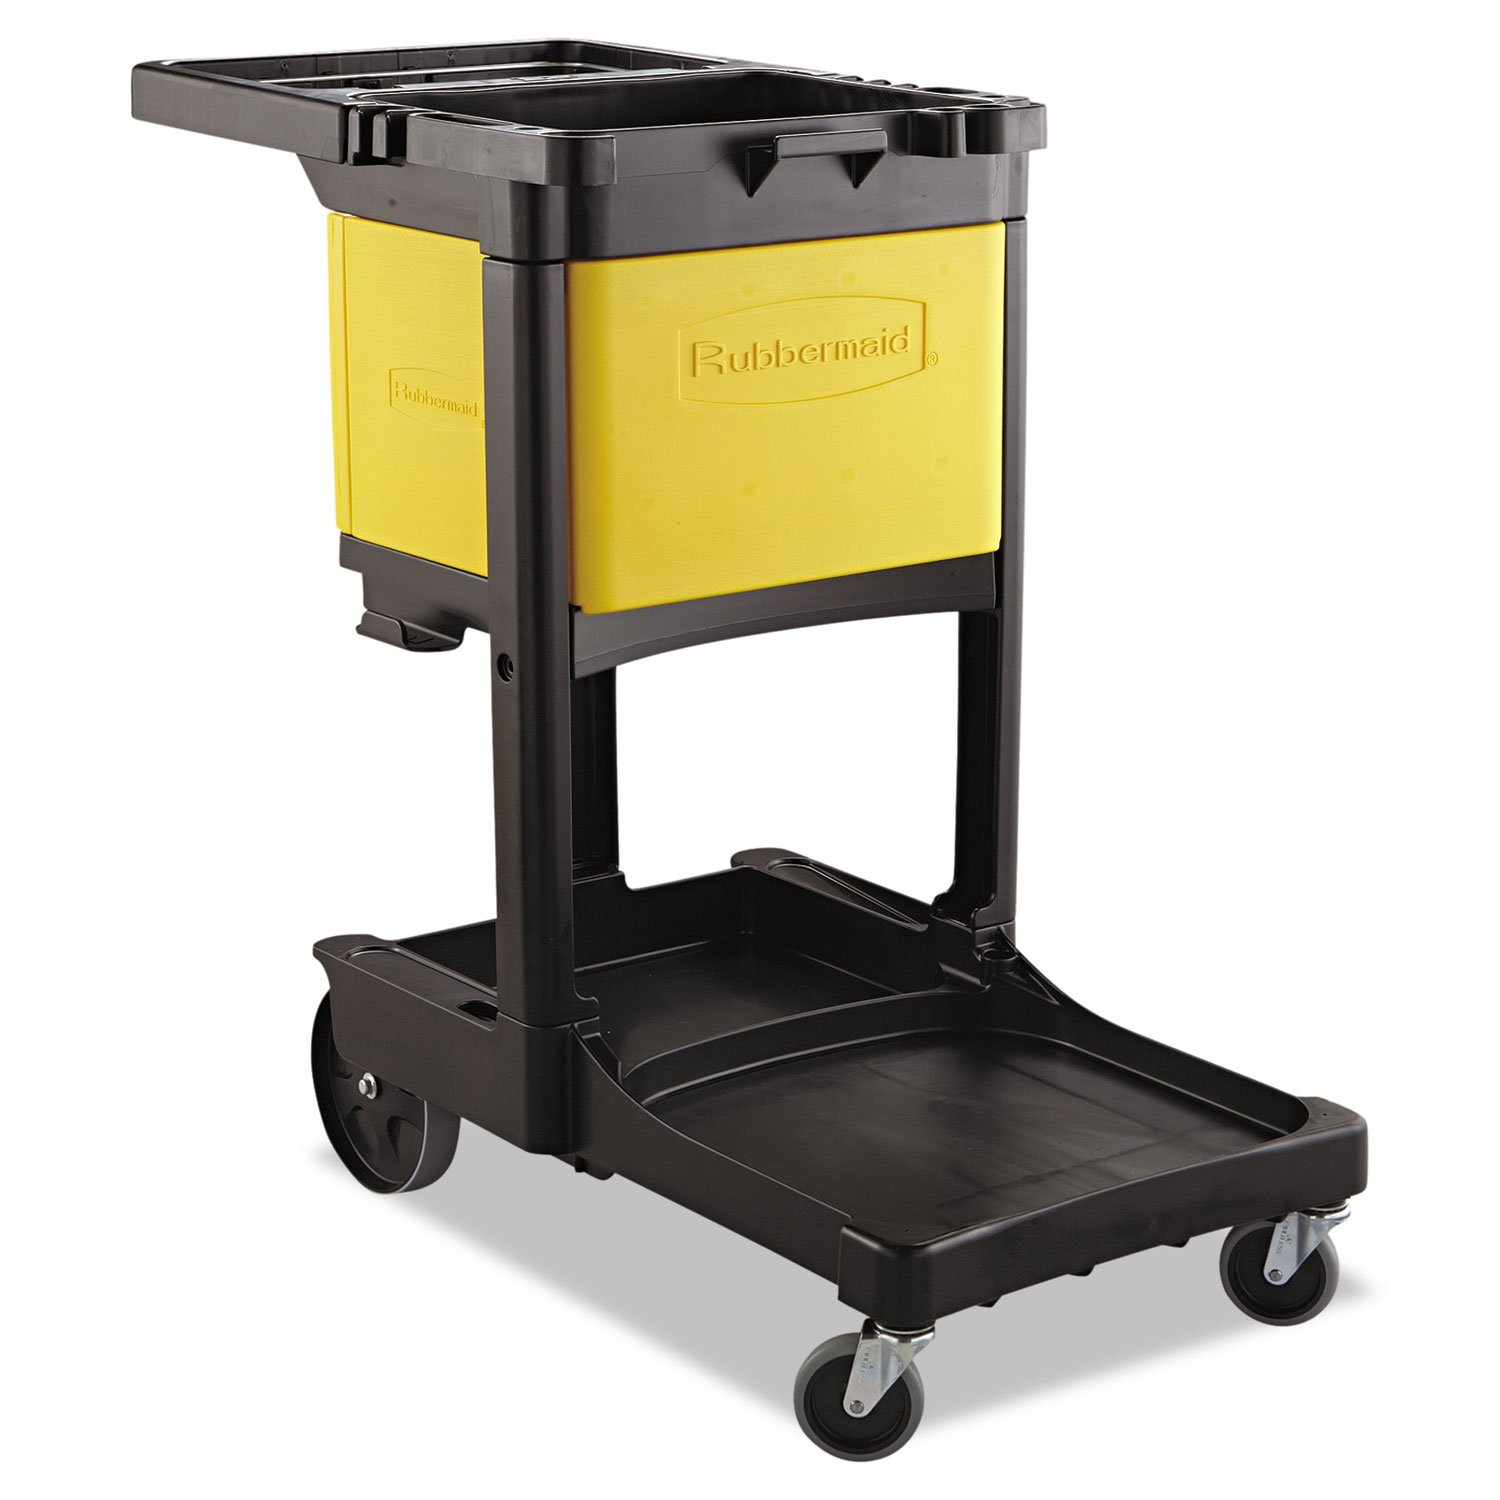 Rubbermaid Commercial Locking Cabinet, For Use With RCP Cleaning Carts - Includes one each.